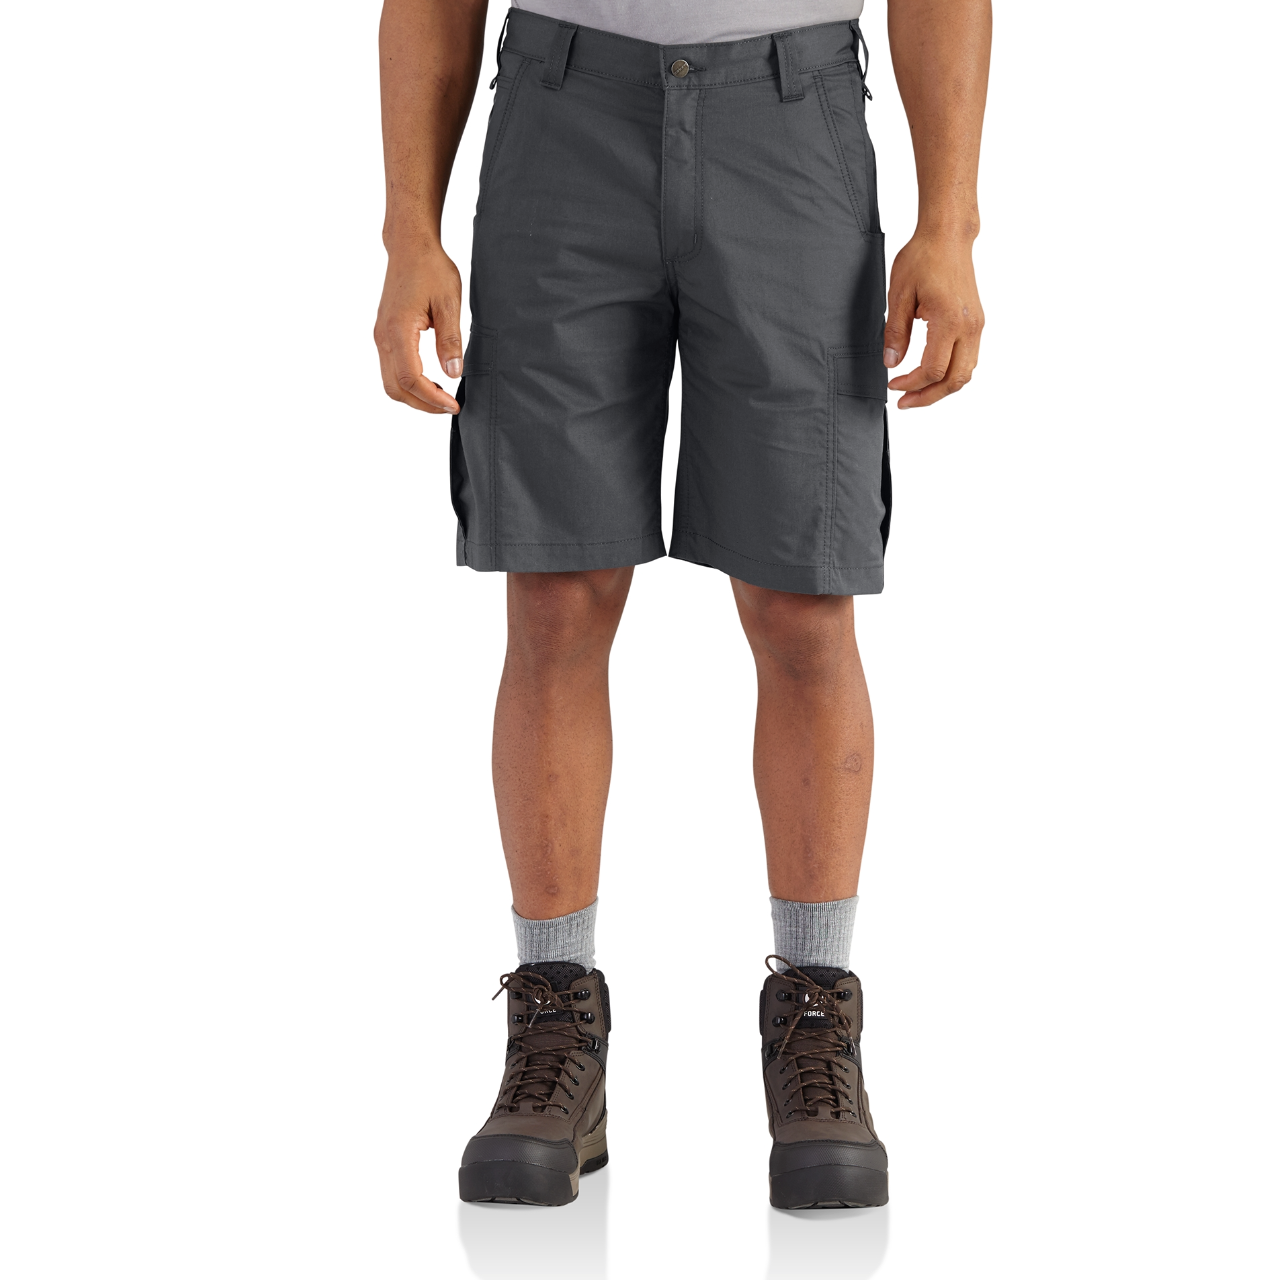 Carhartt Extremes Cargo Shorts - Use Coupon Code: SAVE20 for Special Savings